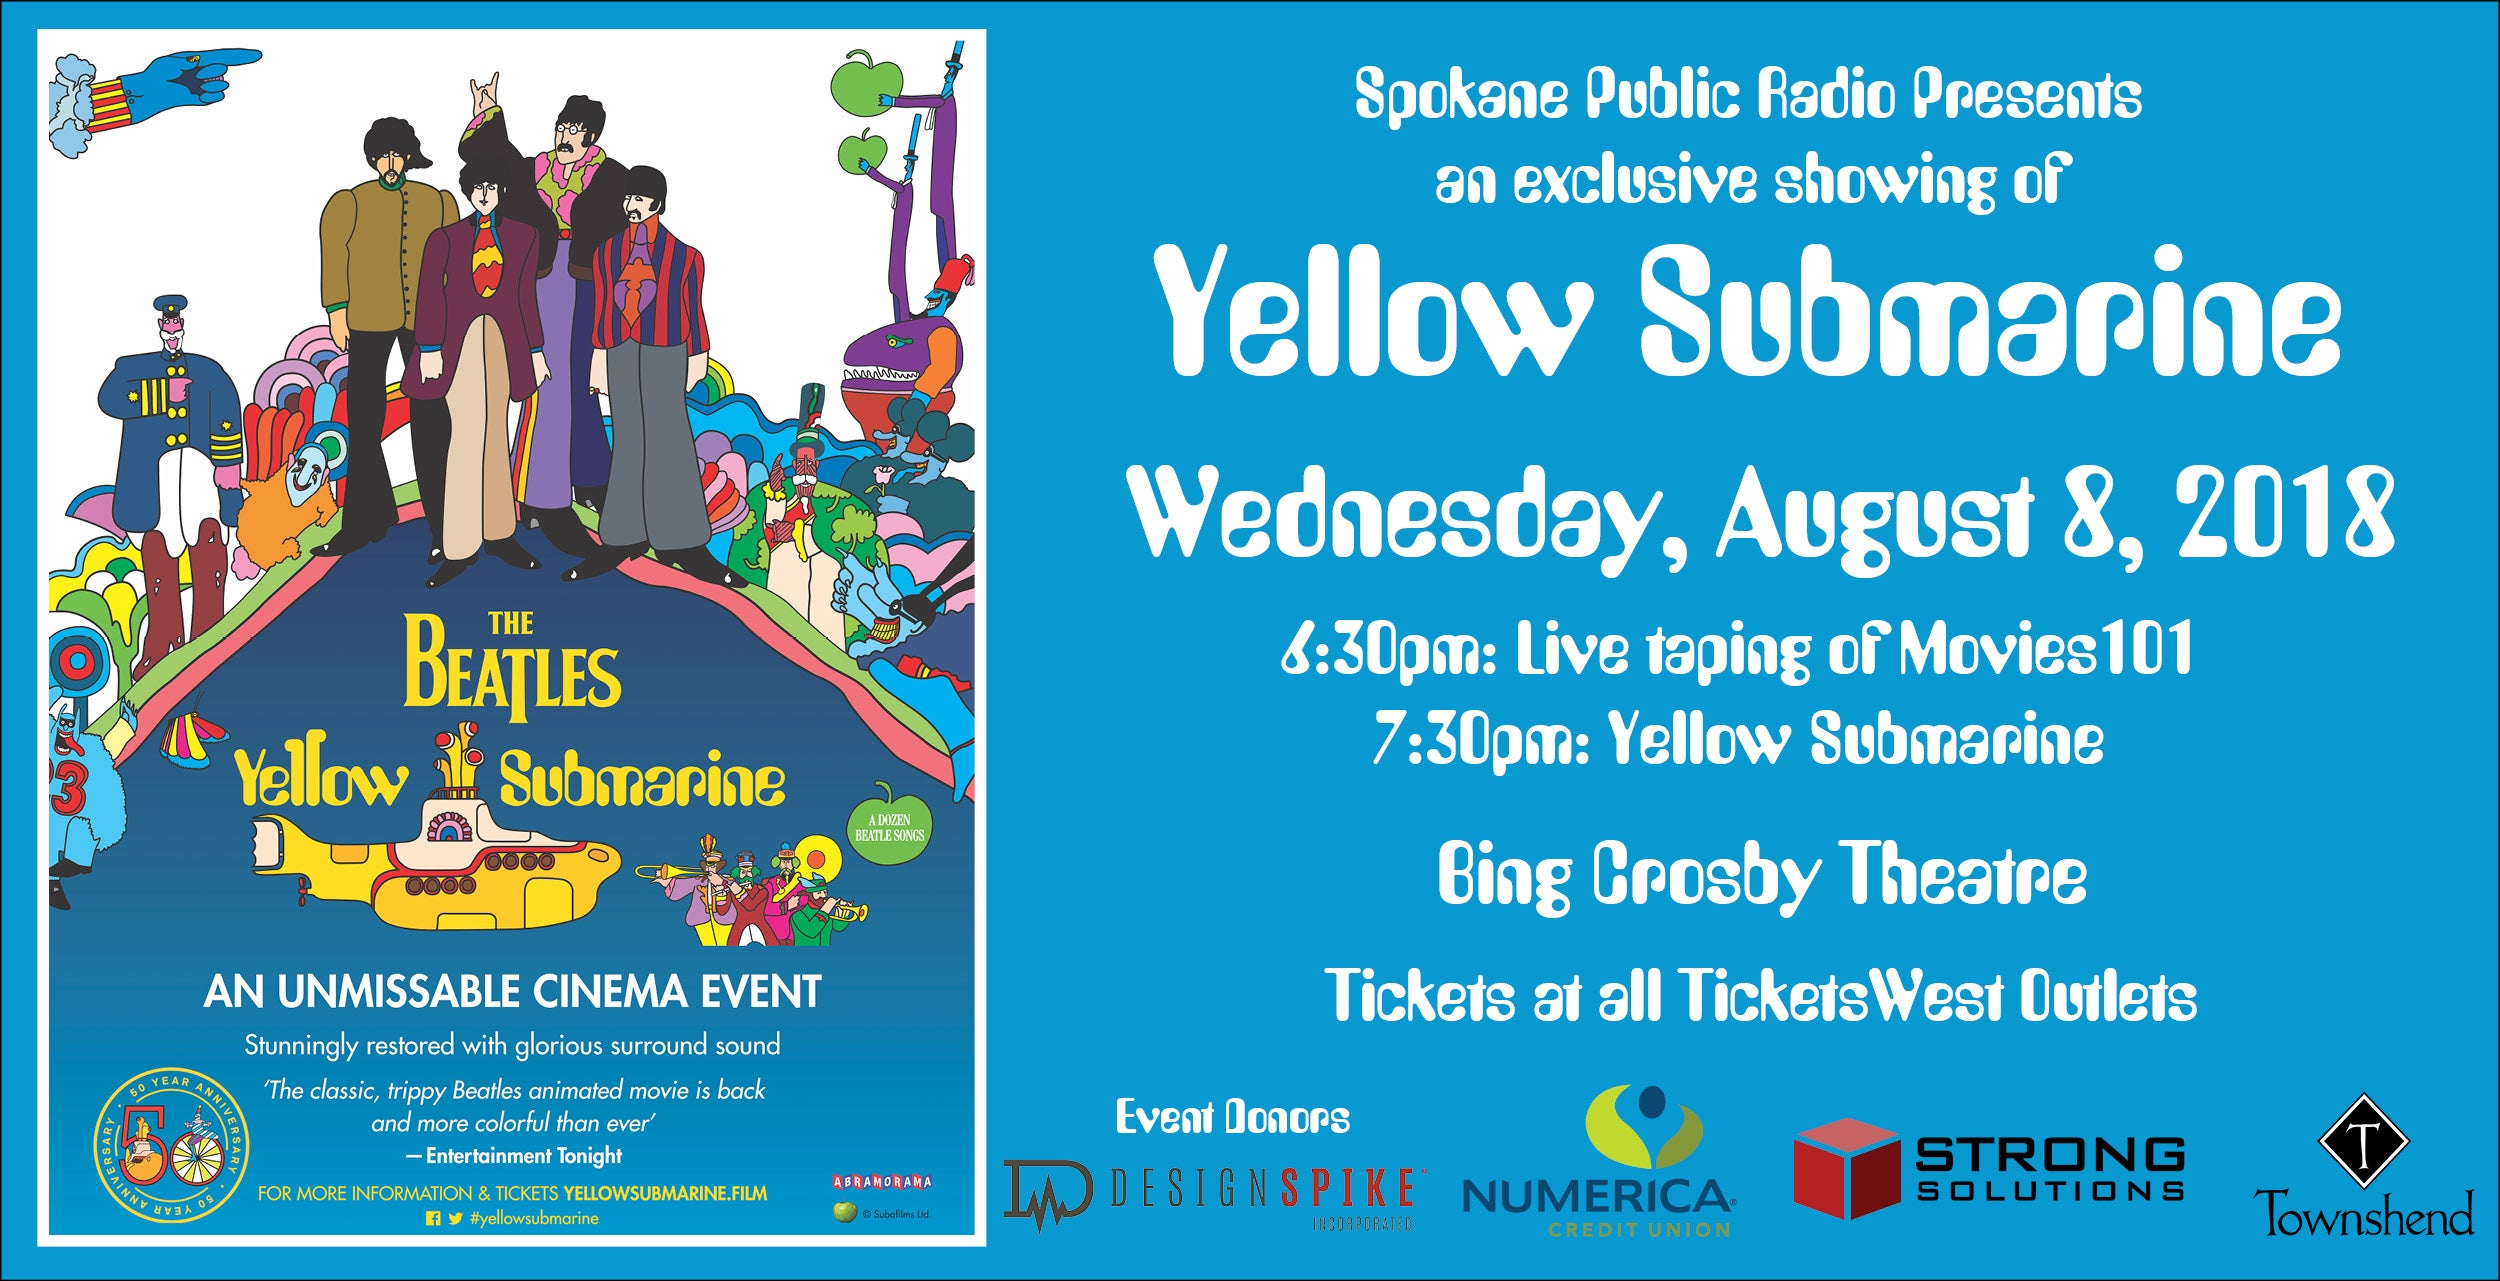 SPR presents The Beatles Yellow Submarine